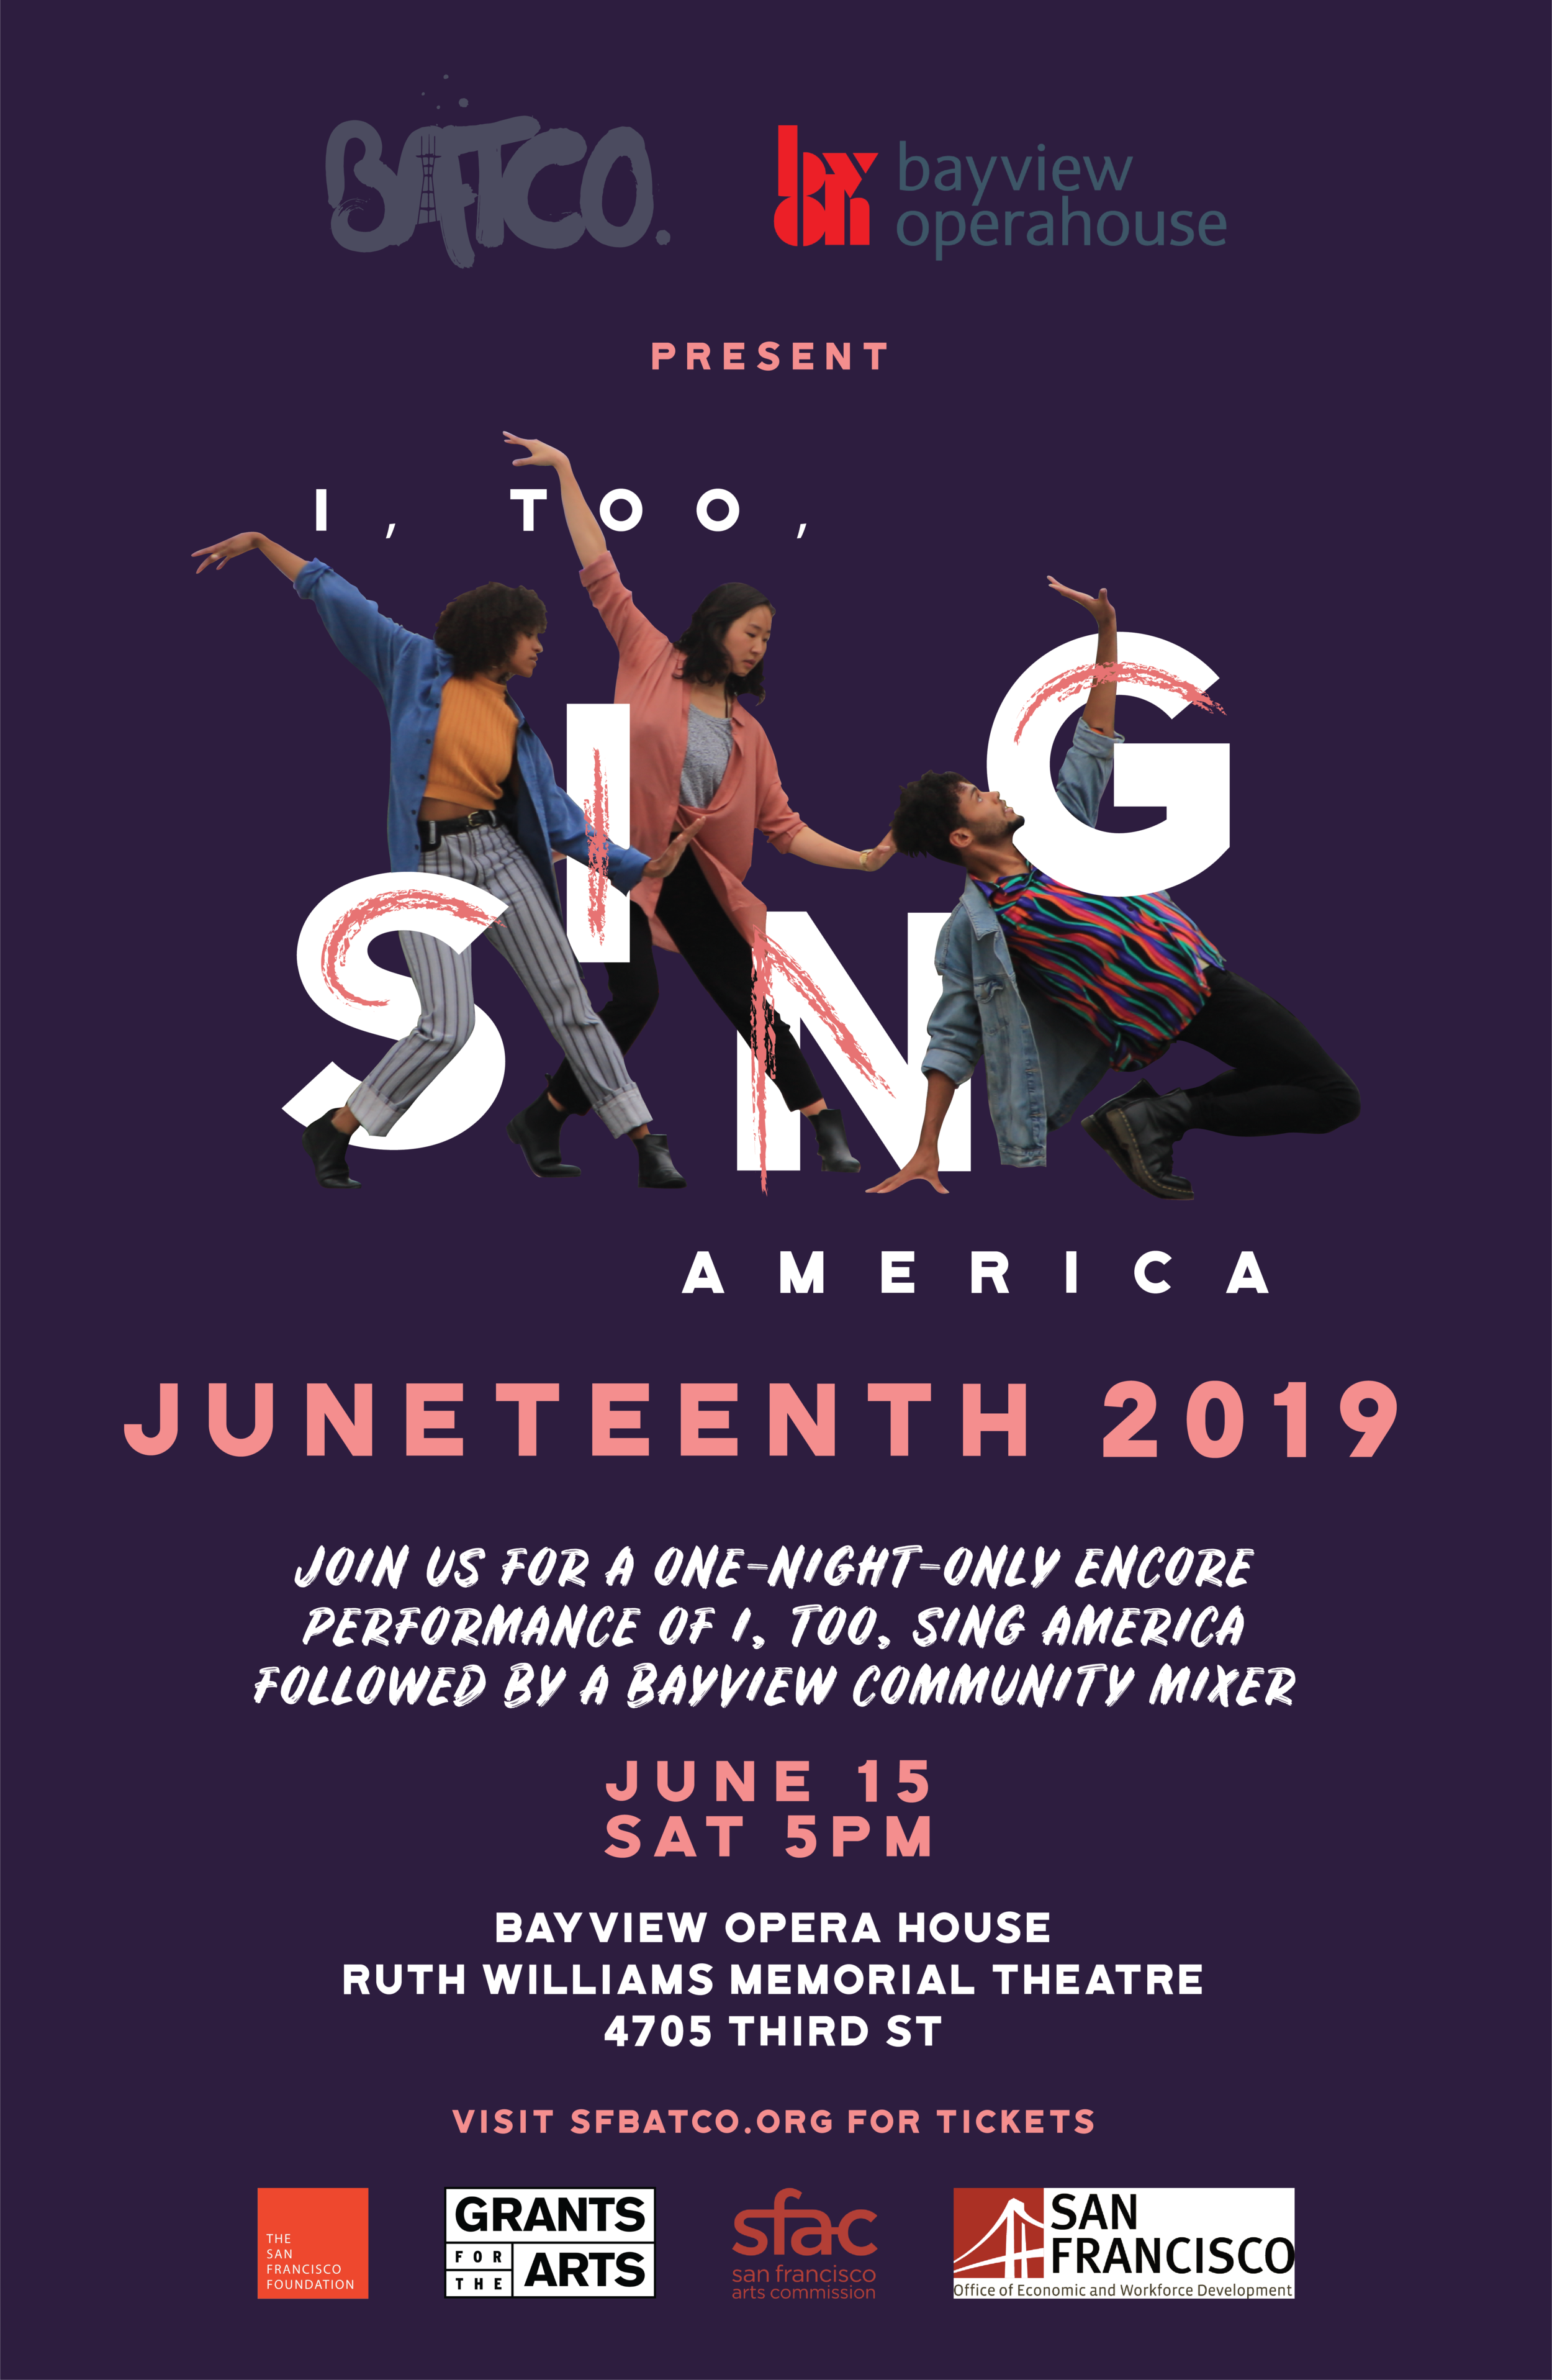 JUNETEENTH 2019 - In celebration of Juneteenth 2019, The Bayview Opera House Ruth Williams Memorial Theatre and the Bay Area Theater Company (BATCO) are producing a one-night-only encore performance of BATCO's I, Too, Sing America. Followed by a Bayview Community Mixer, meet and greet your friends and neighbors.For tickets, head to itsa_bvoh.eventbrite.com